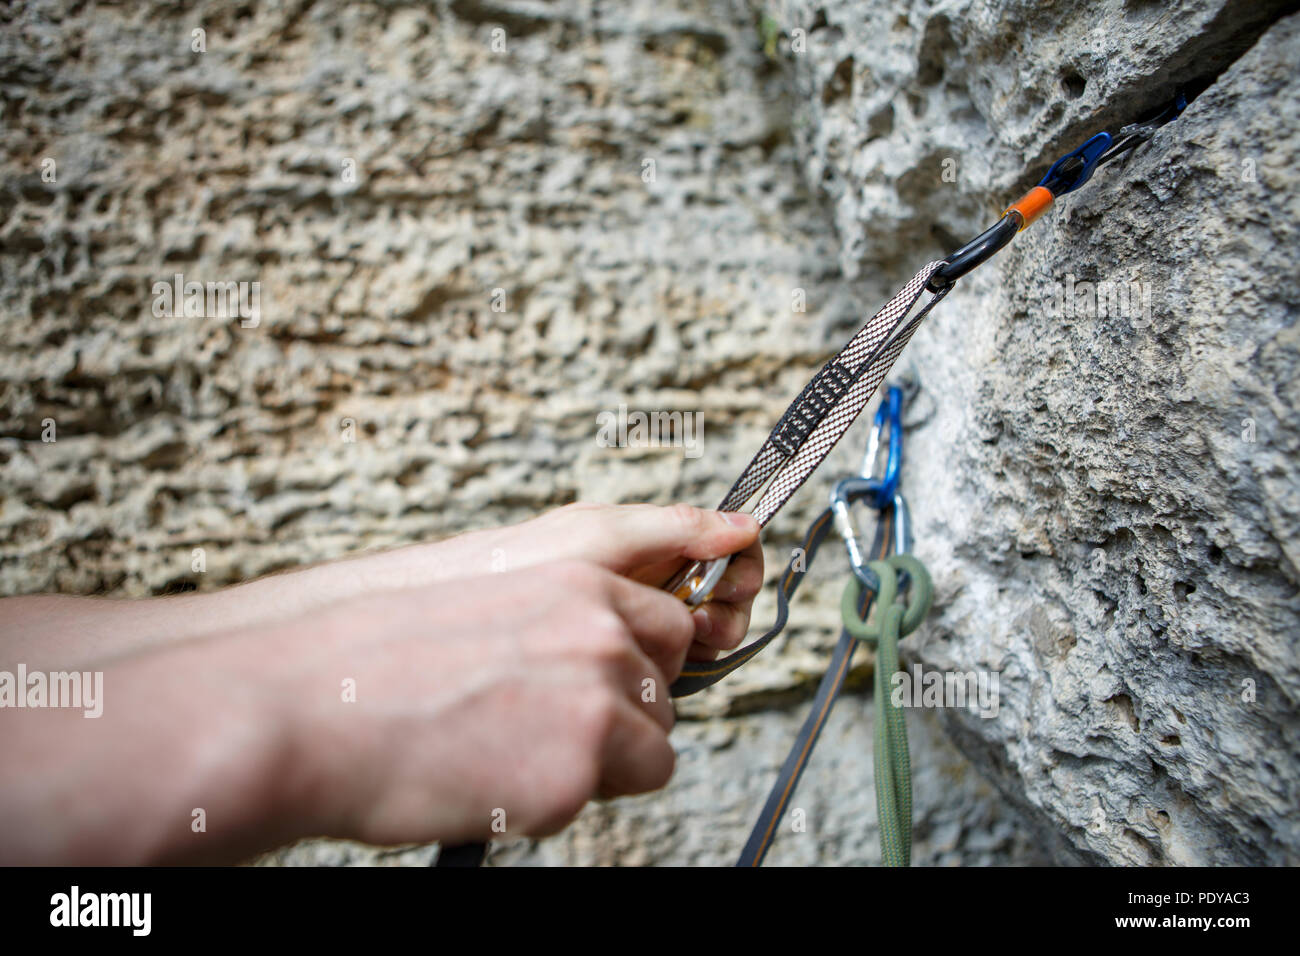 Photo of human's hand hammering up mountain - Stock Image